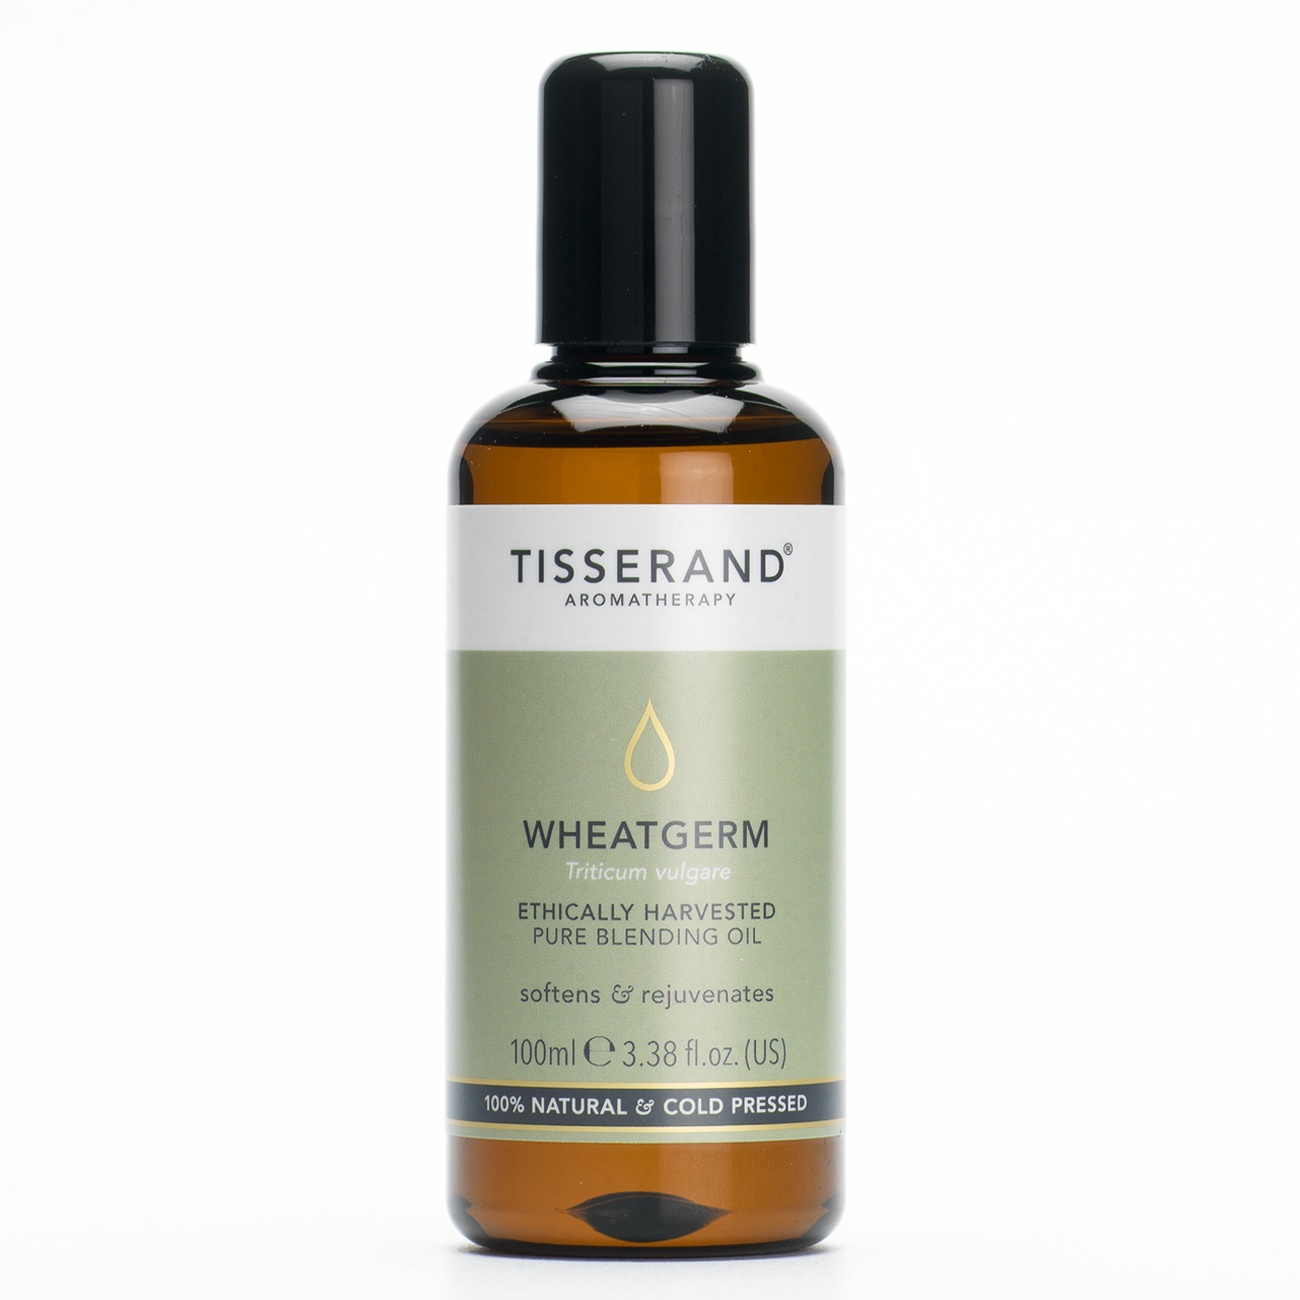 Tisserand Wheatgerm Pure Blending Oil 100ml